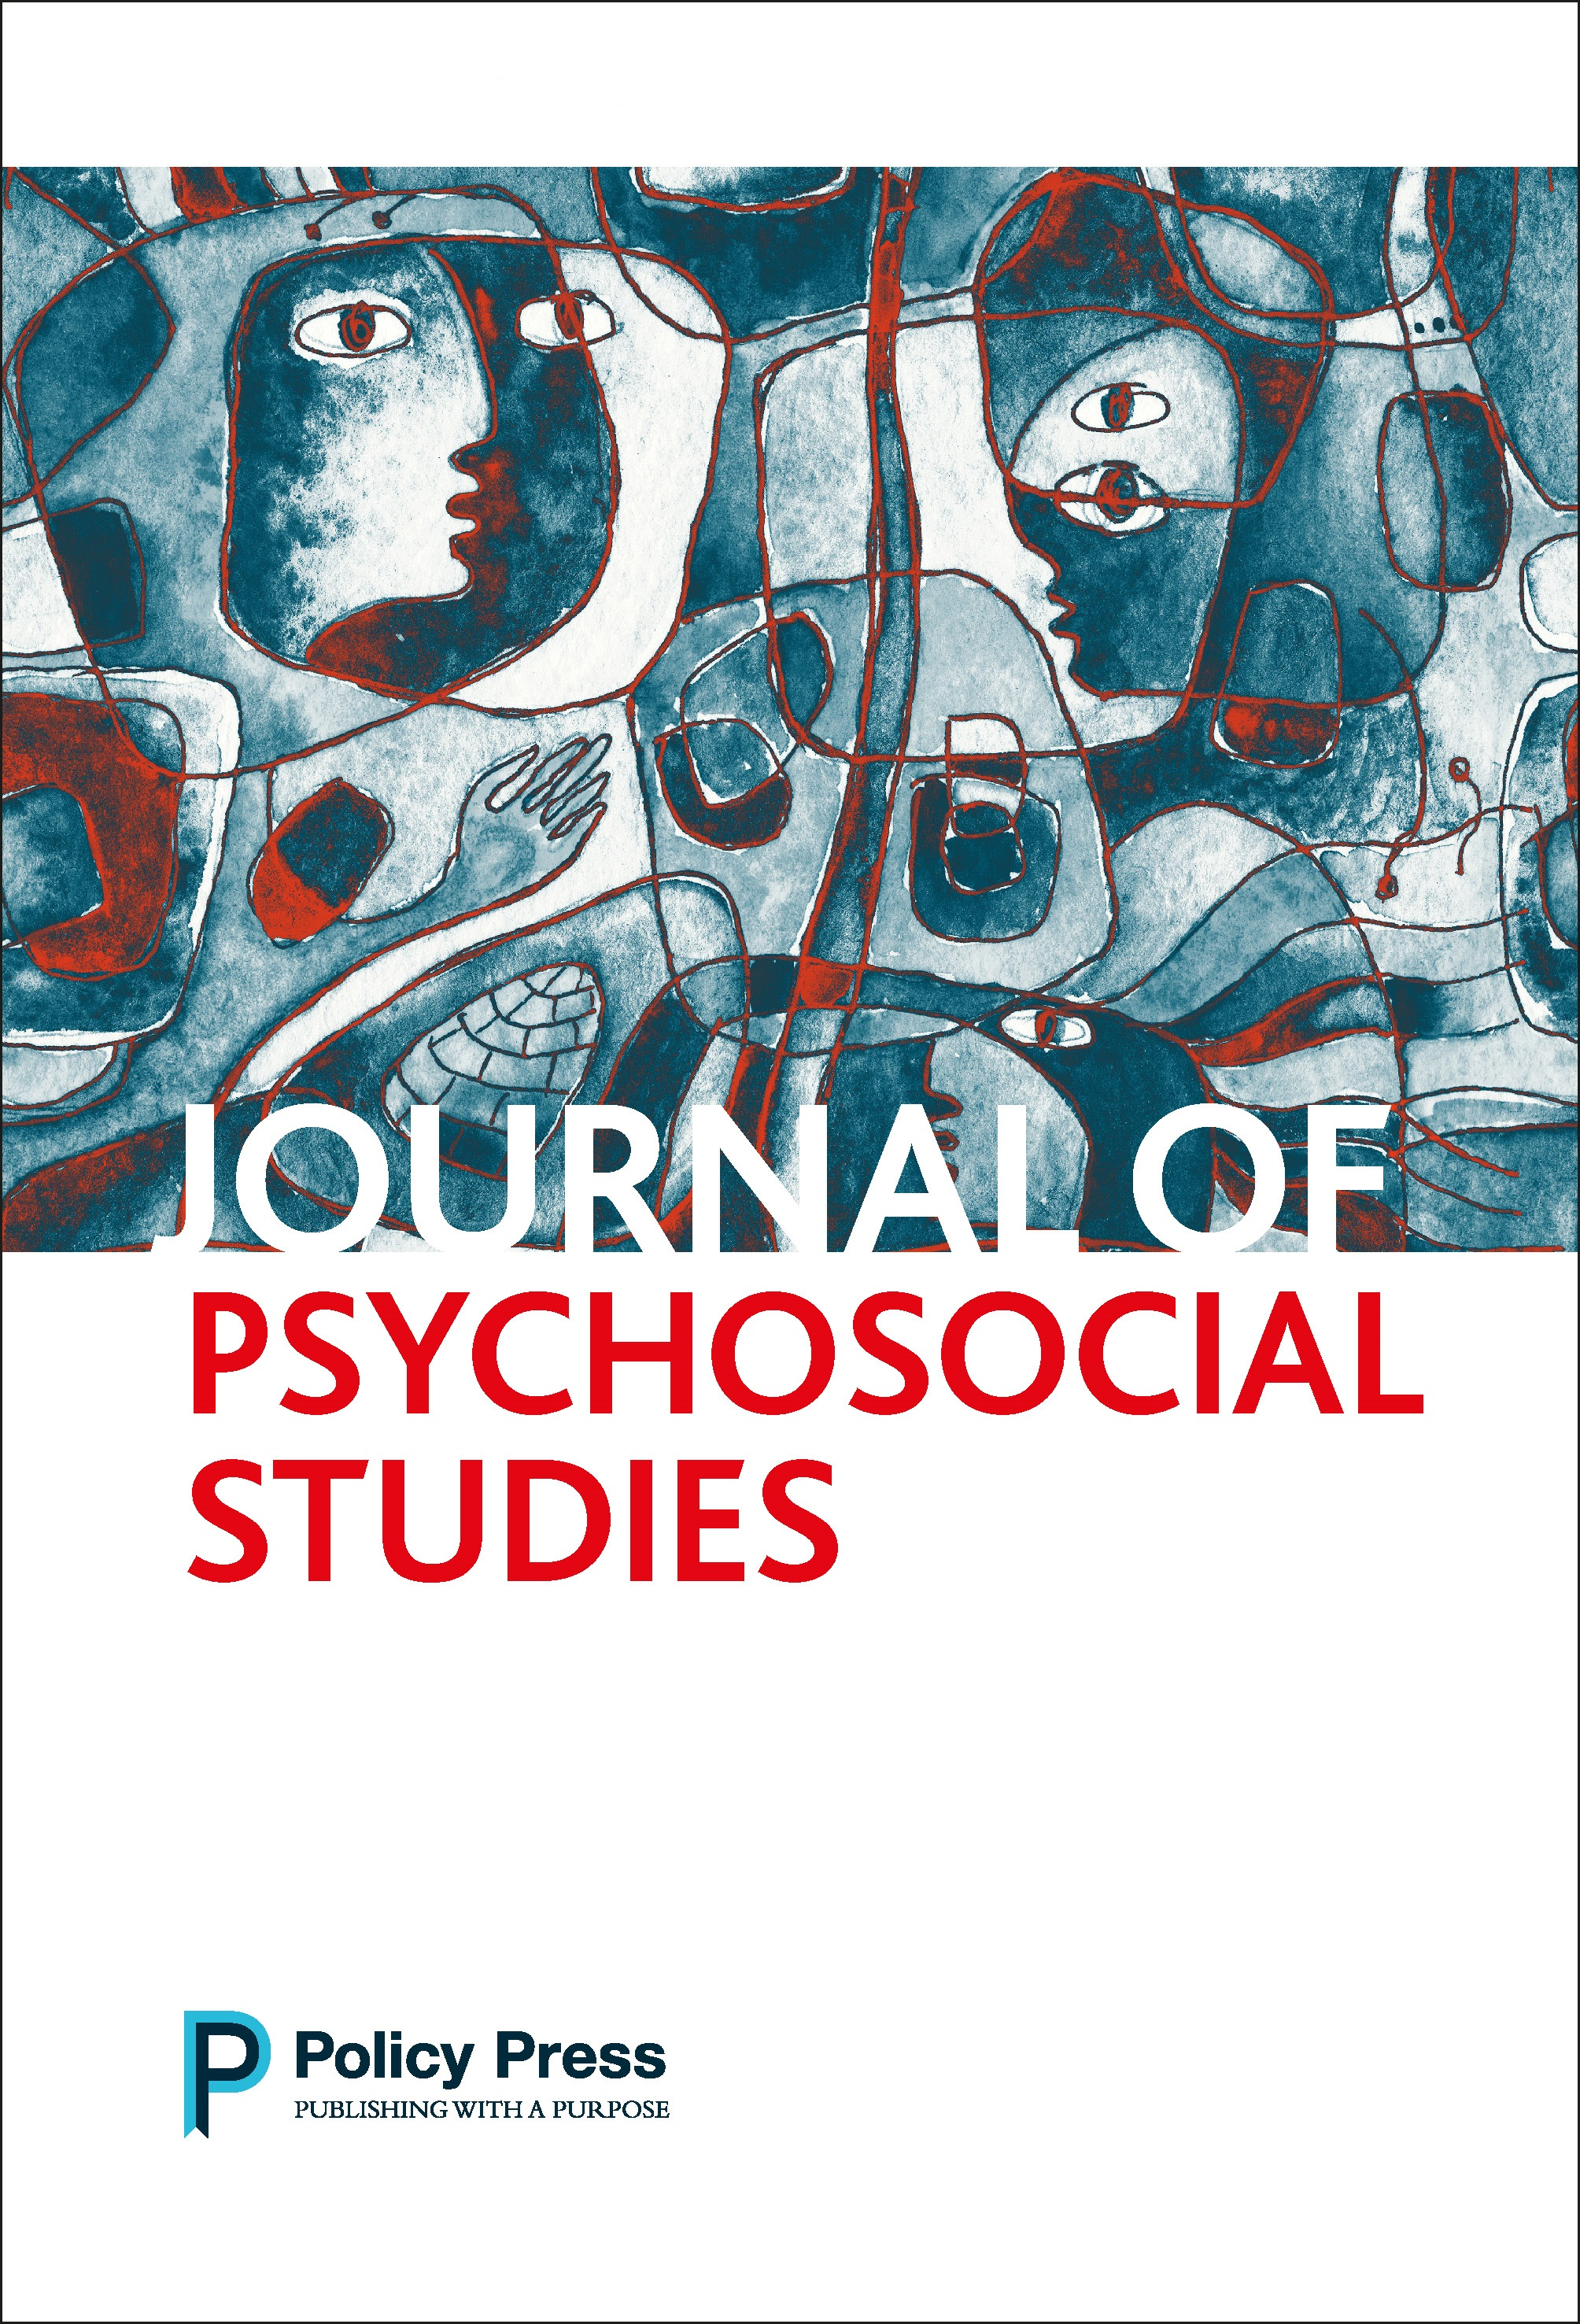 Journal of Psychosocial Studies cover